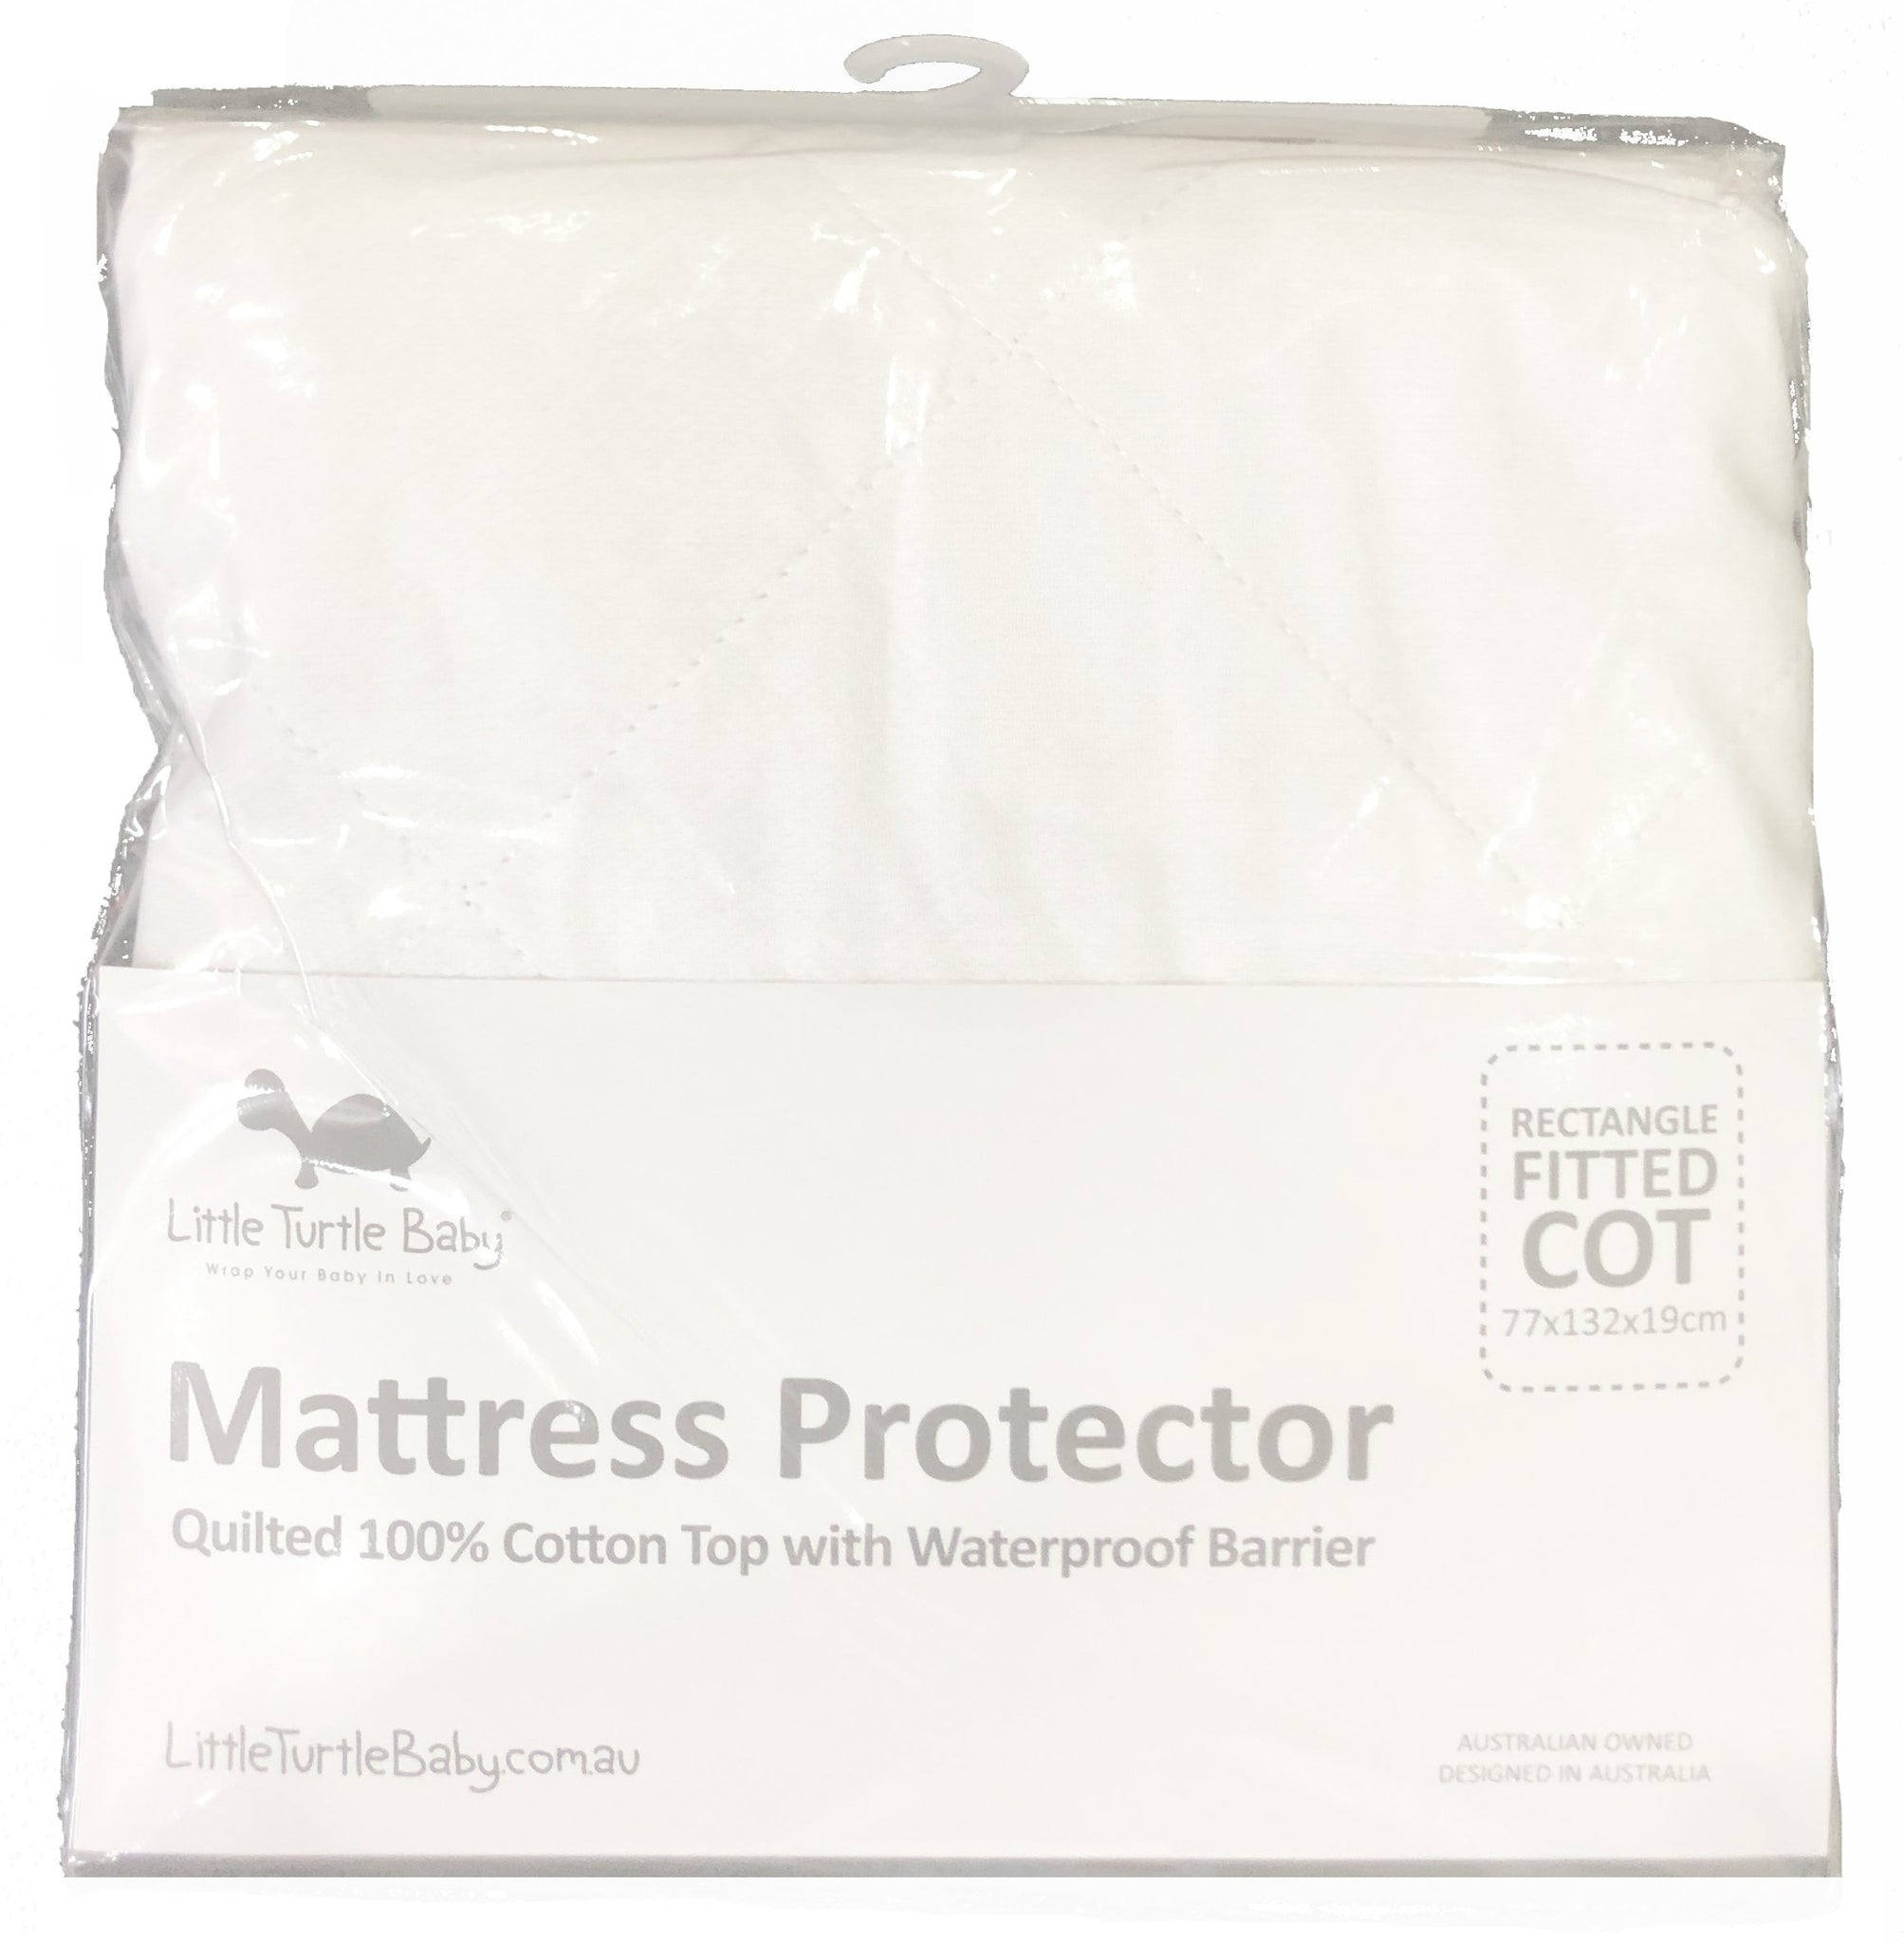 Little Turtle Baby Standard Cot Mattress Protector